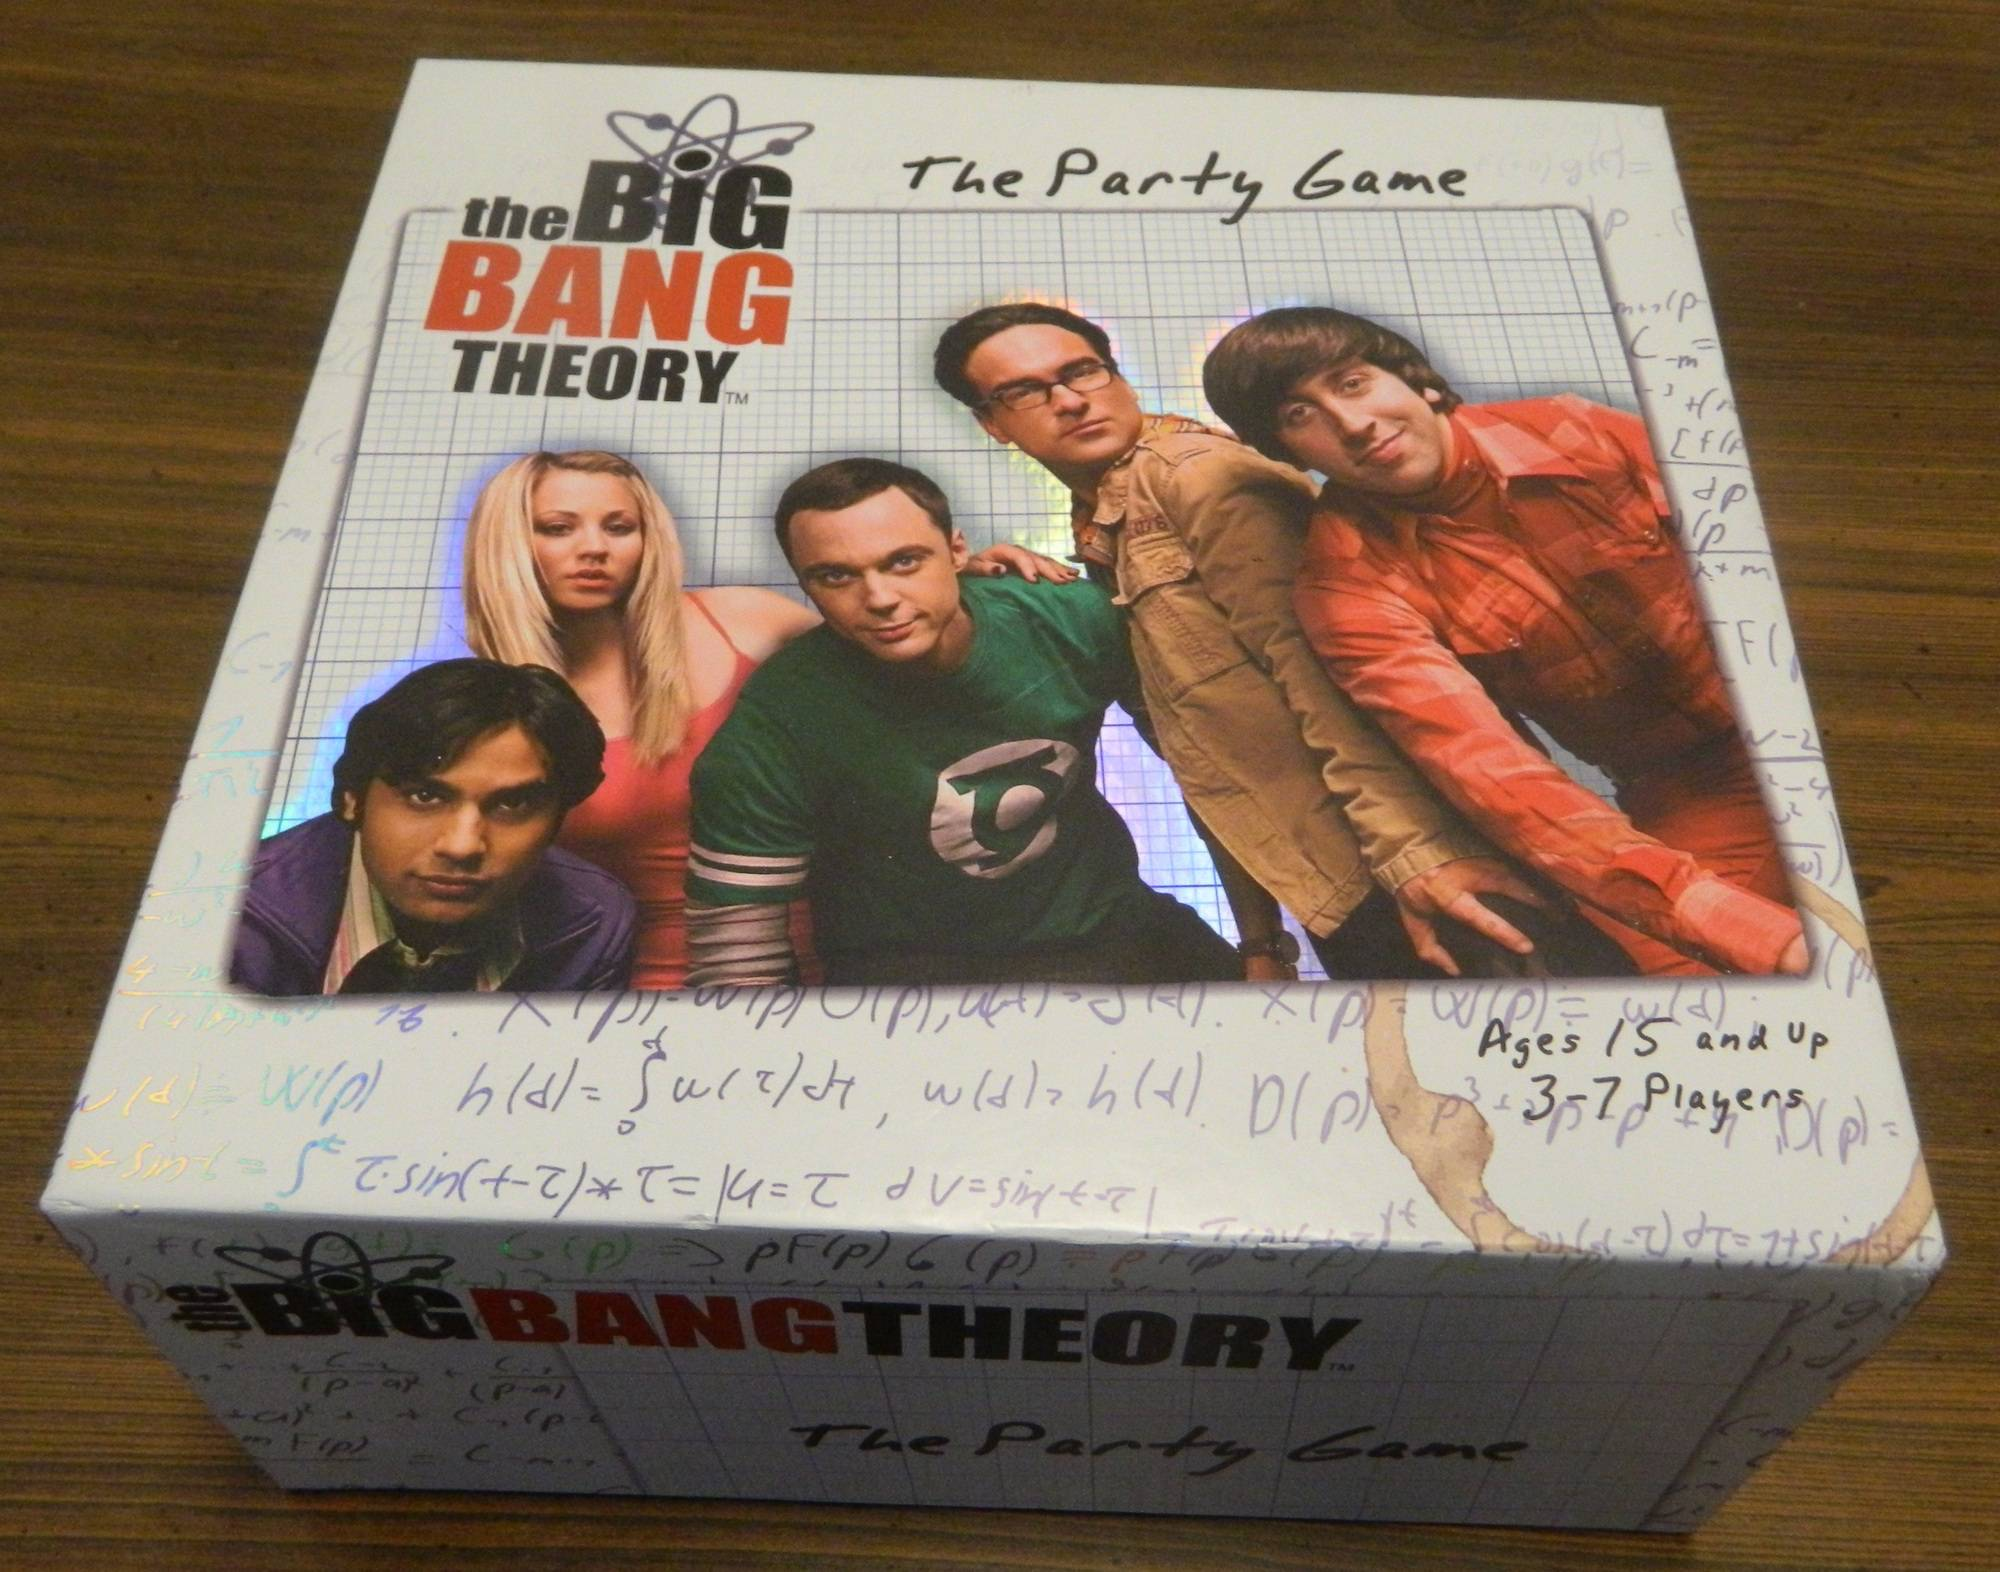 Big Bang Theory Party Game Box